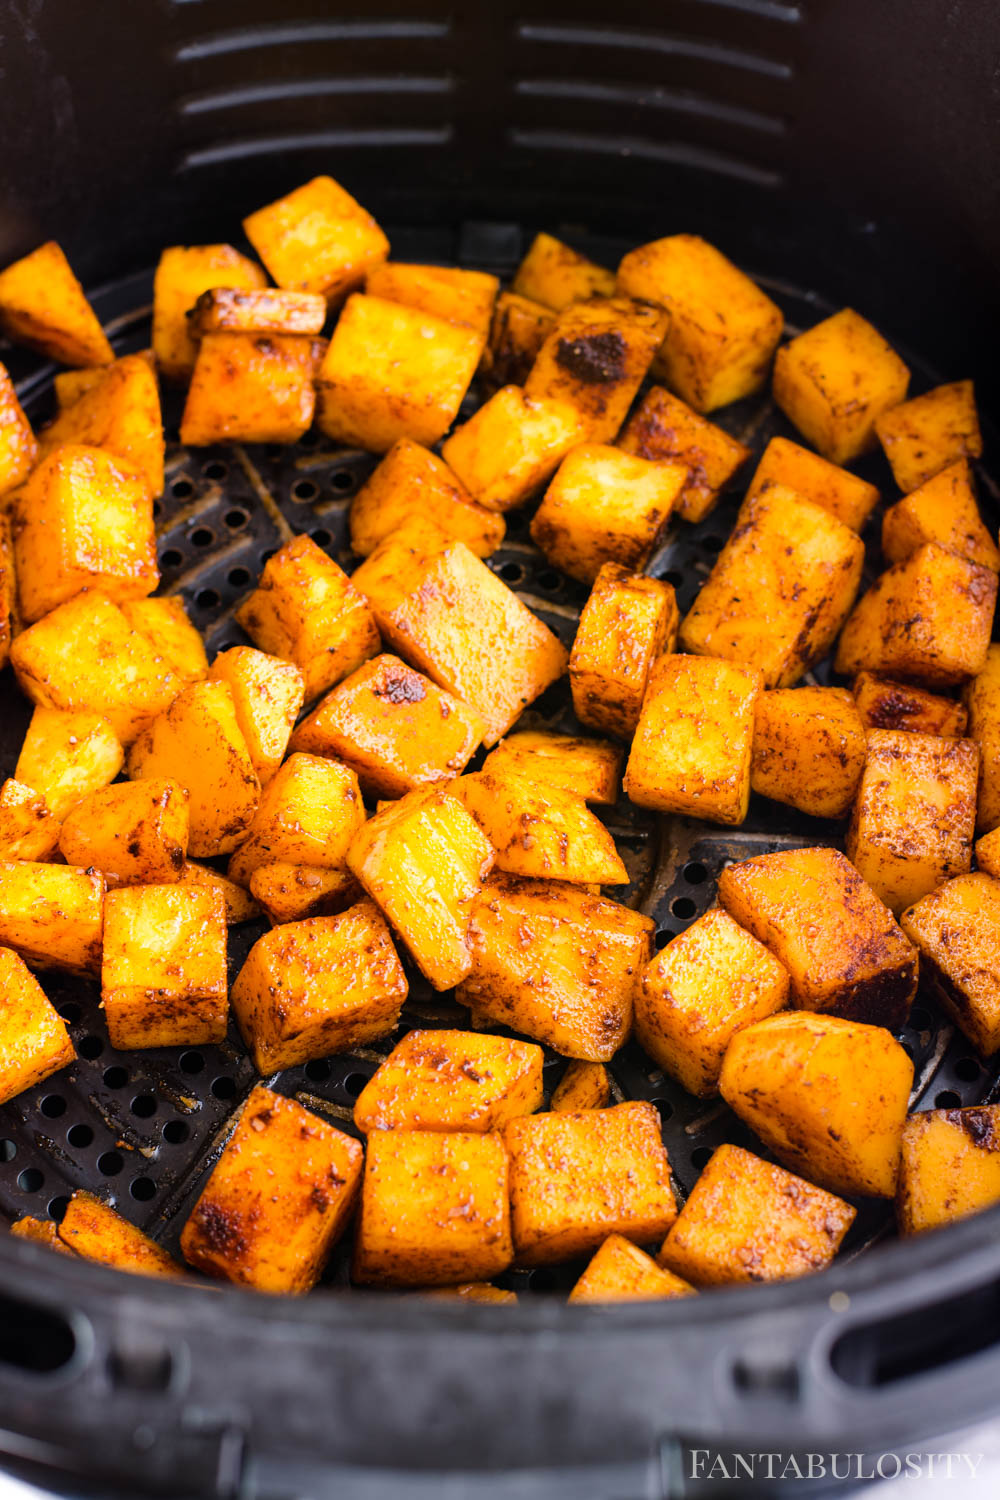 Cook butternut squash cubes in air fryer